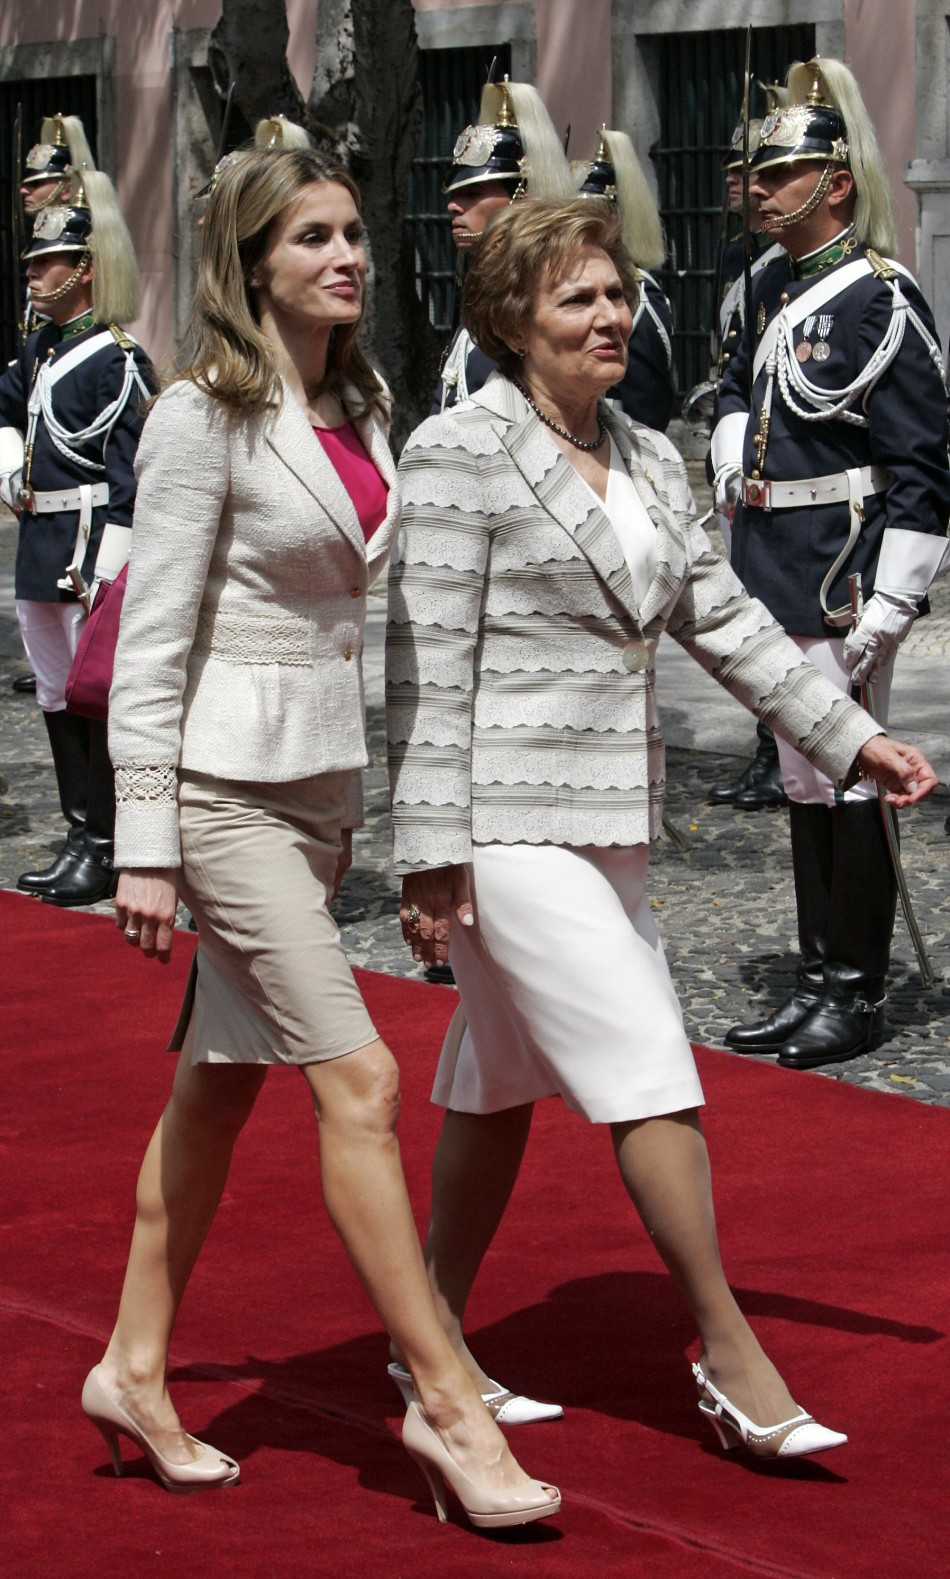 Spain039s Glamorous Princess Letizia Takes Portugal in a Storm of Fashion